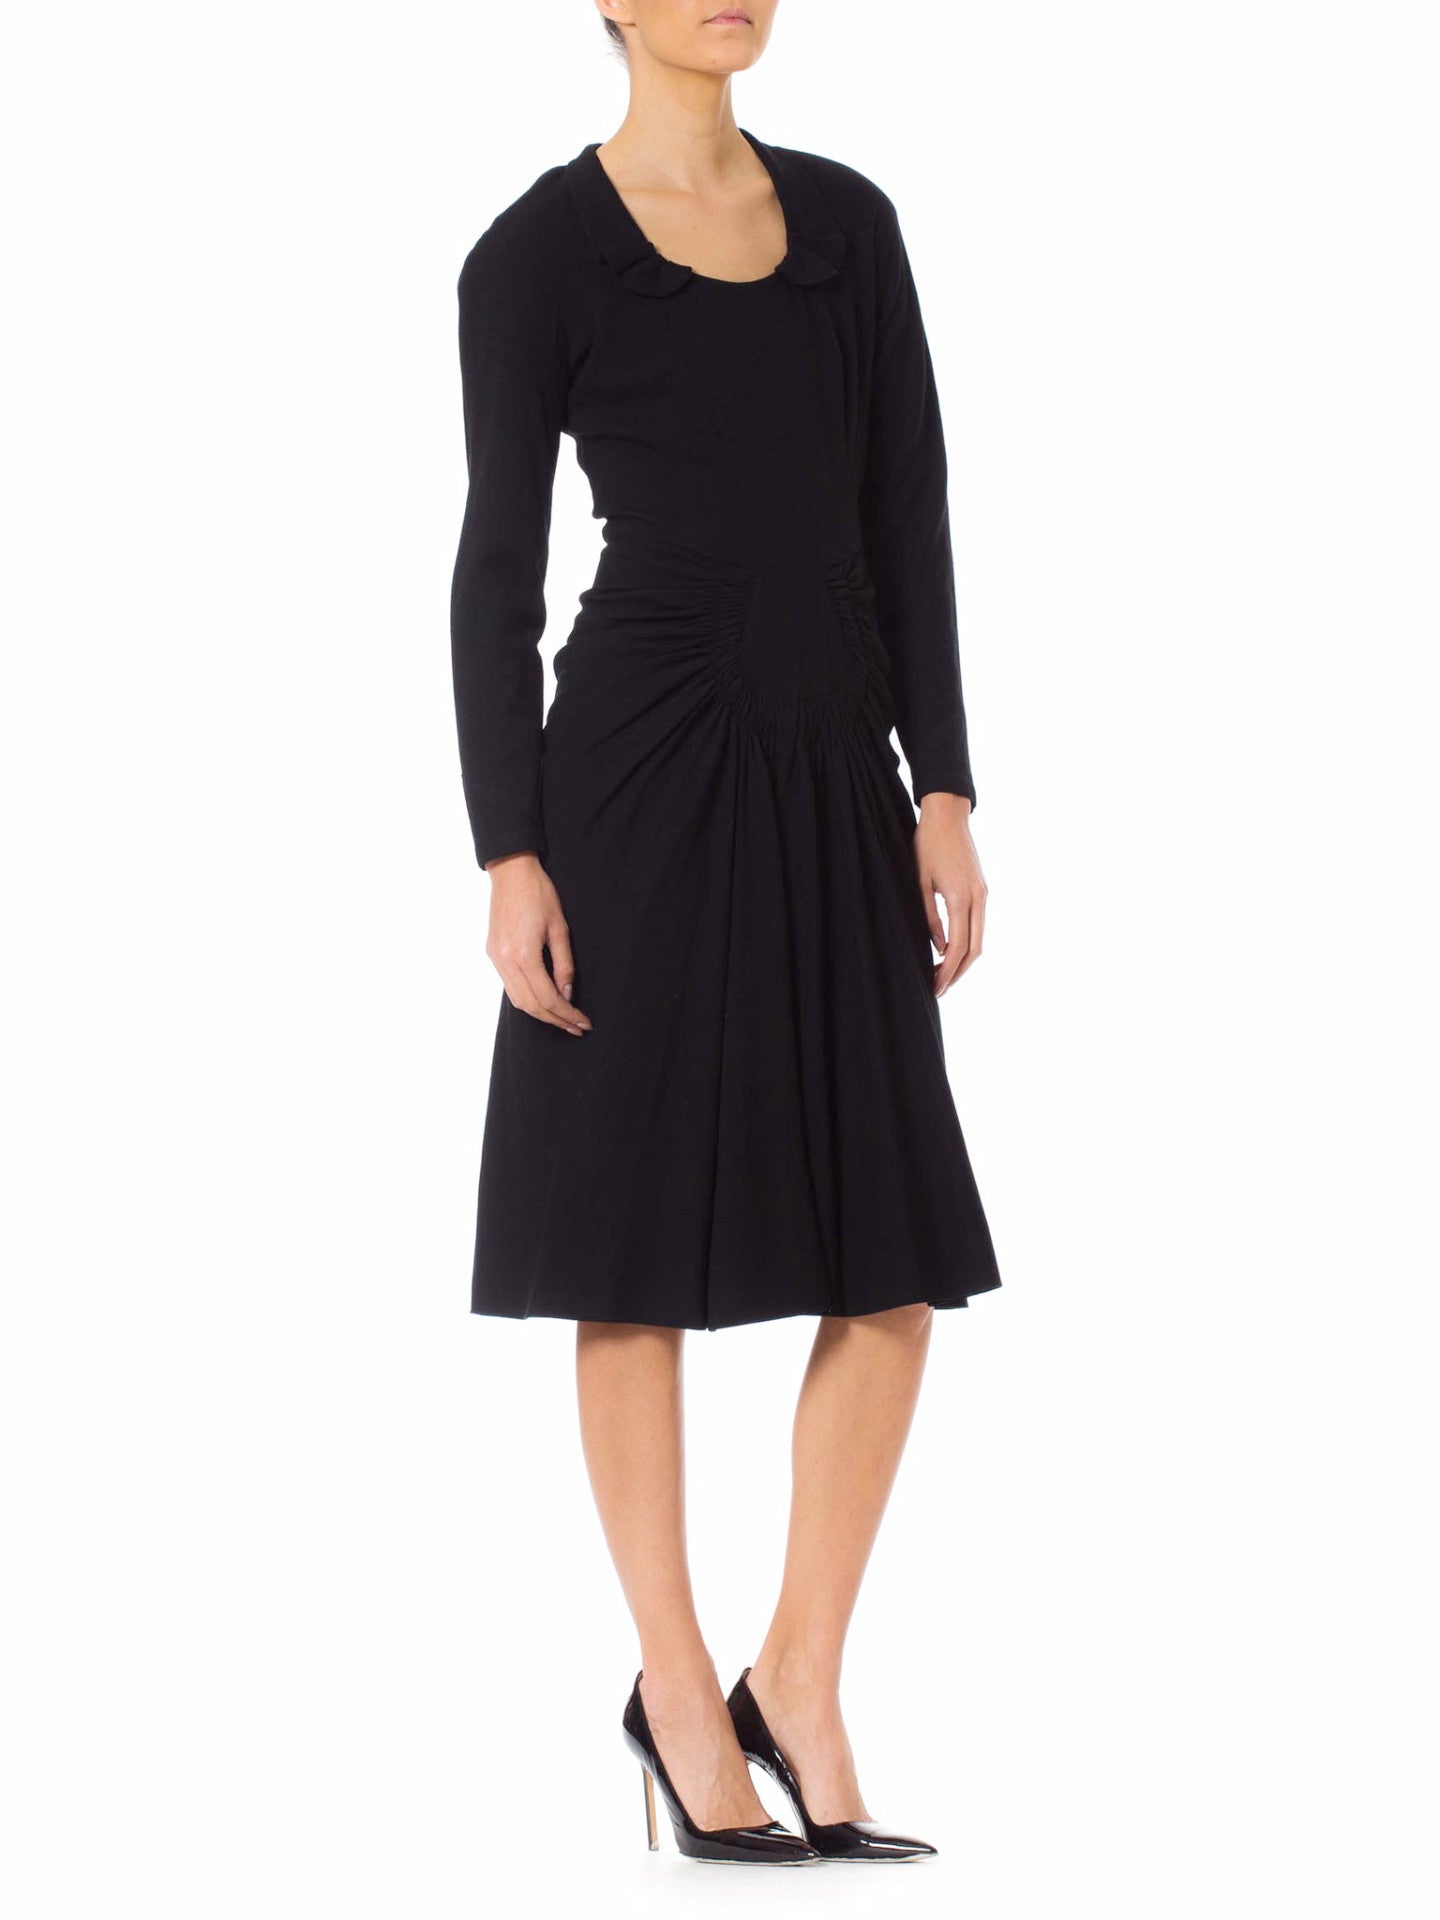 1940s Black Vamp Style Long Sleeve Pleated Skirt Dress